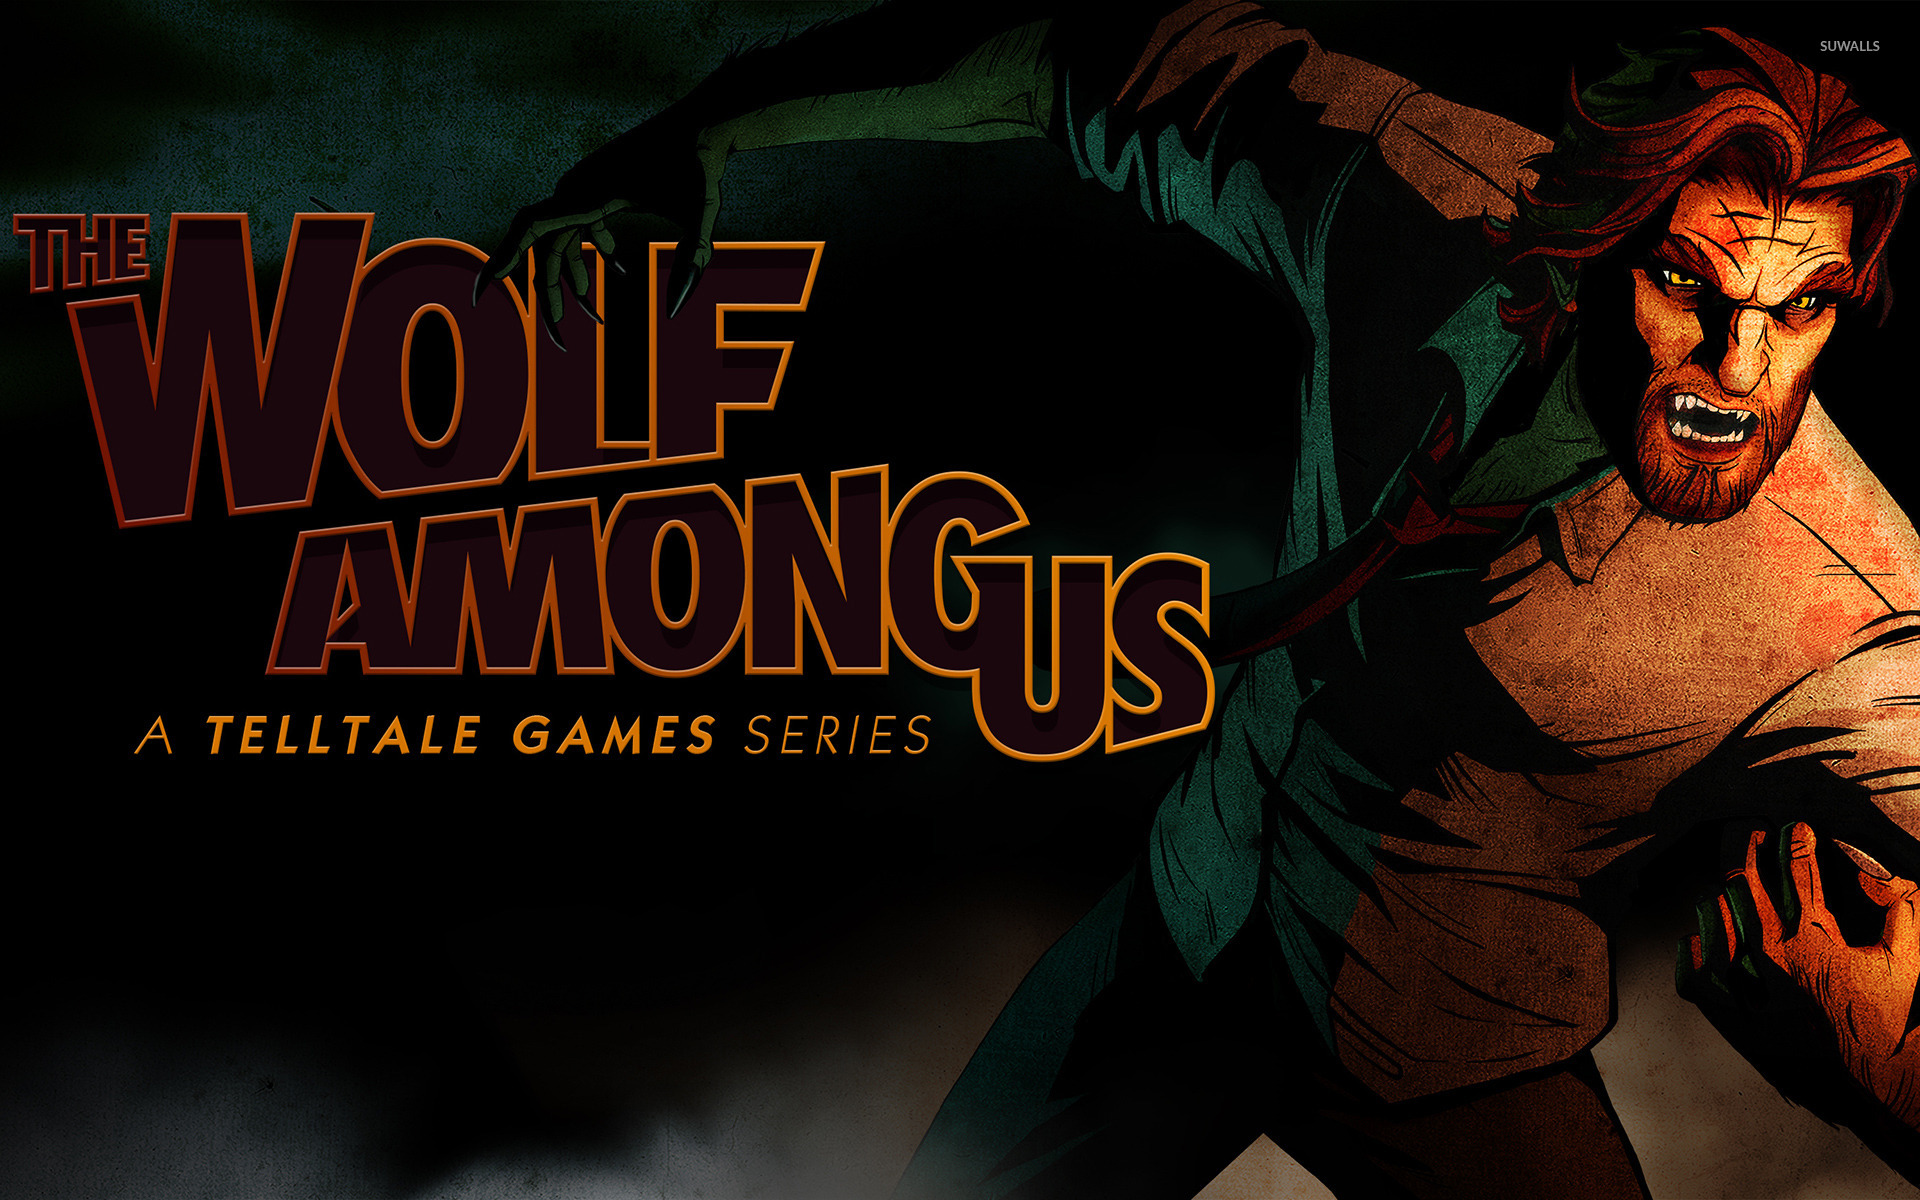 The Wolf Among Us Wallpaper Game Wallpapers 32427